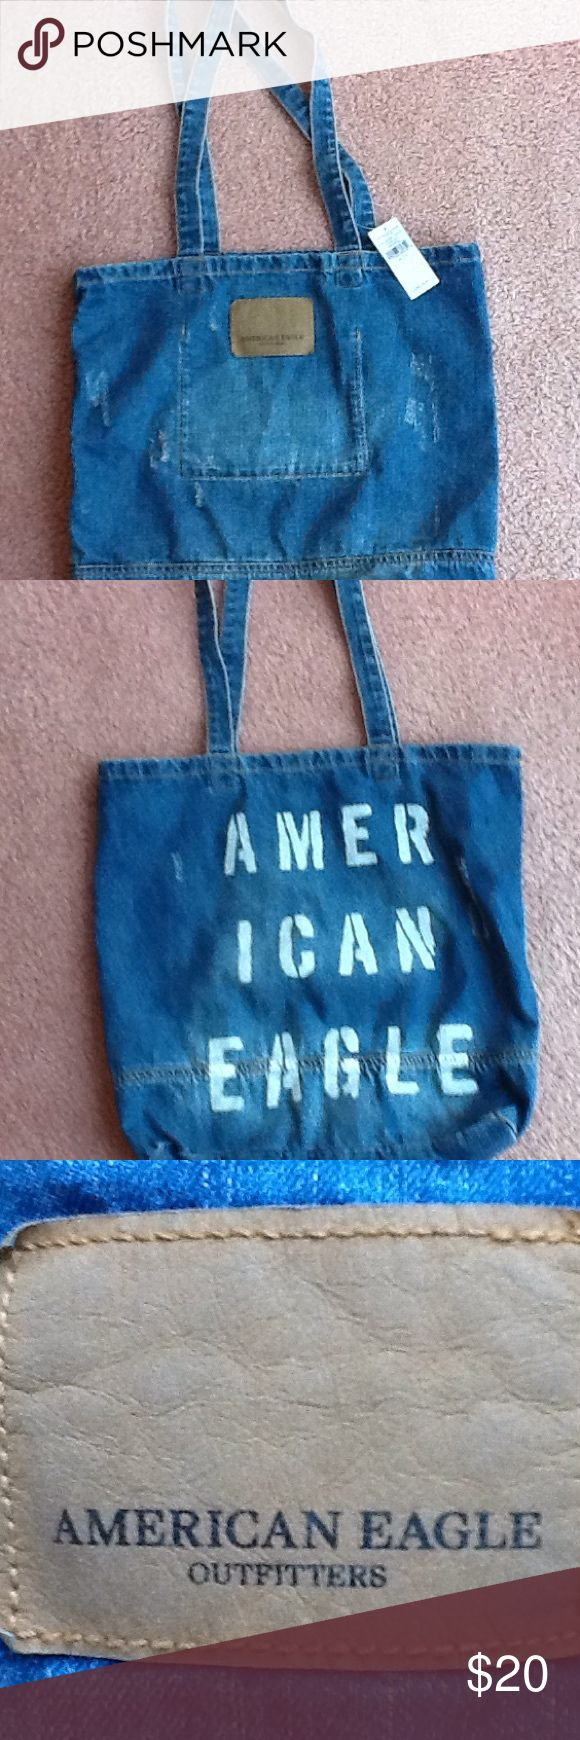 American Eagle Outfitters Denim Tote - NWT Brand new tote. Never used. Distressed denim.  American Eagle painted on the back. American Eagle Outfitters Bags Totes